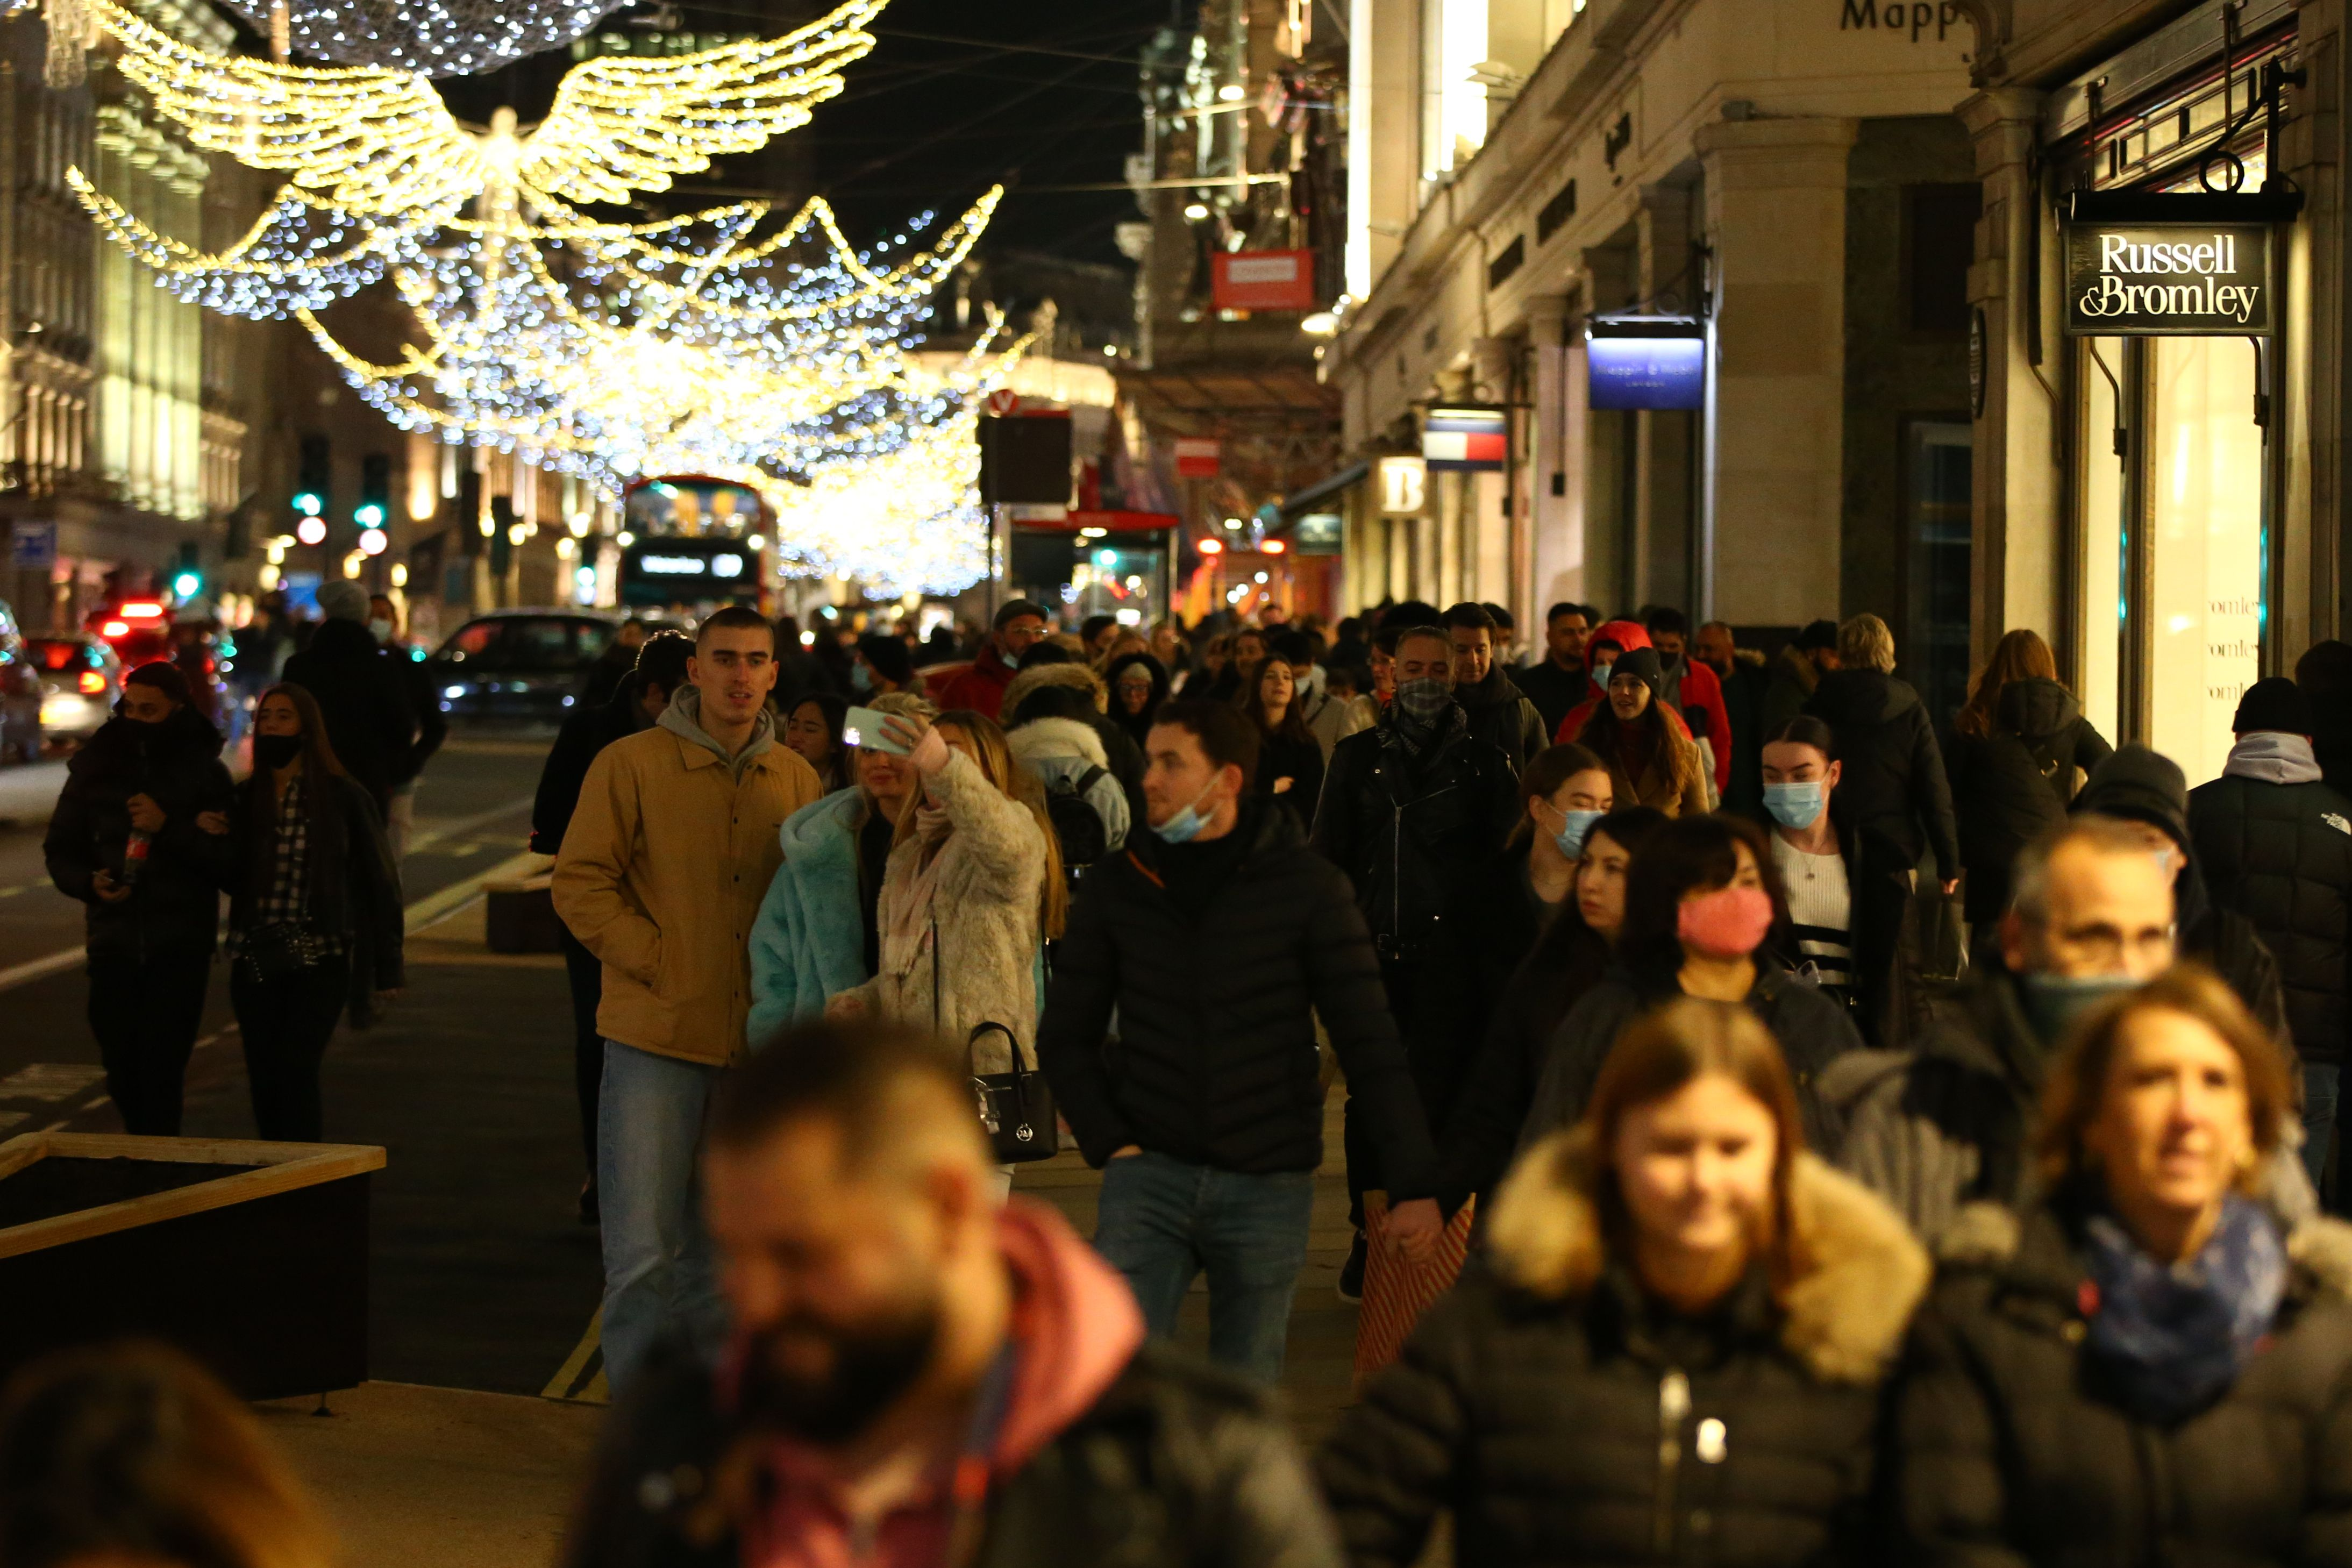 Shoppers walk under the Christmas lights on Regents Street in London on December 6, 2020. - Shoppers returned to Englands high streets this week as shops reopened following the end of a four-week coronavirus lockdown. (Photo by Hollie Adams / AFP) (Photo by HOLLIE ADAMS/AFP via Getty Images)